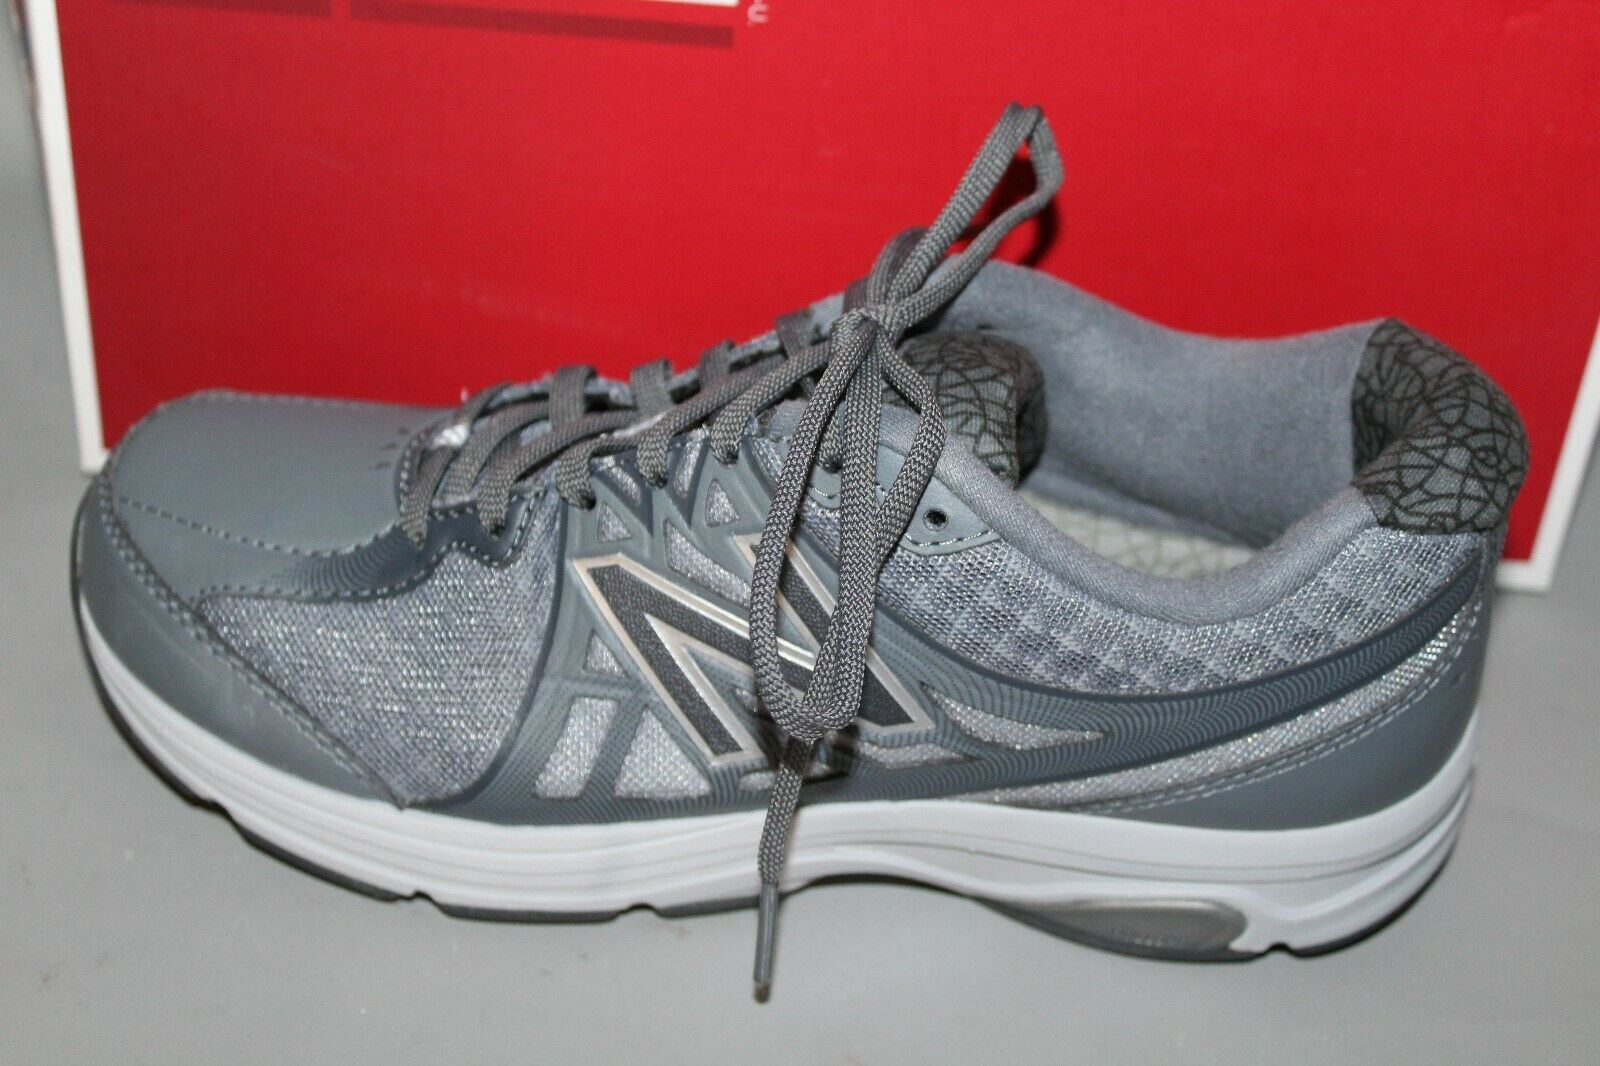 NEW Women's New Balance WW847GY2 Size 6.5 B (Medium) Supportive Walking shoes